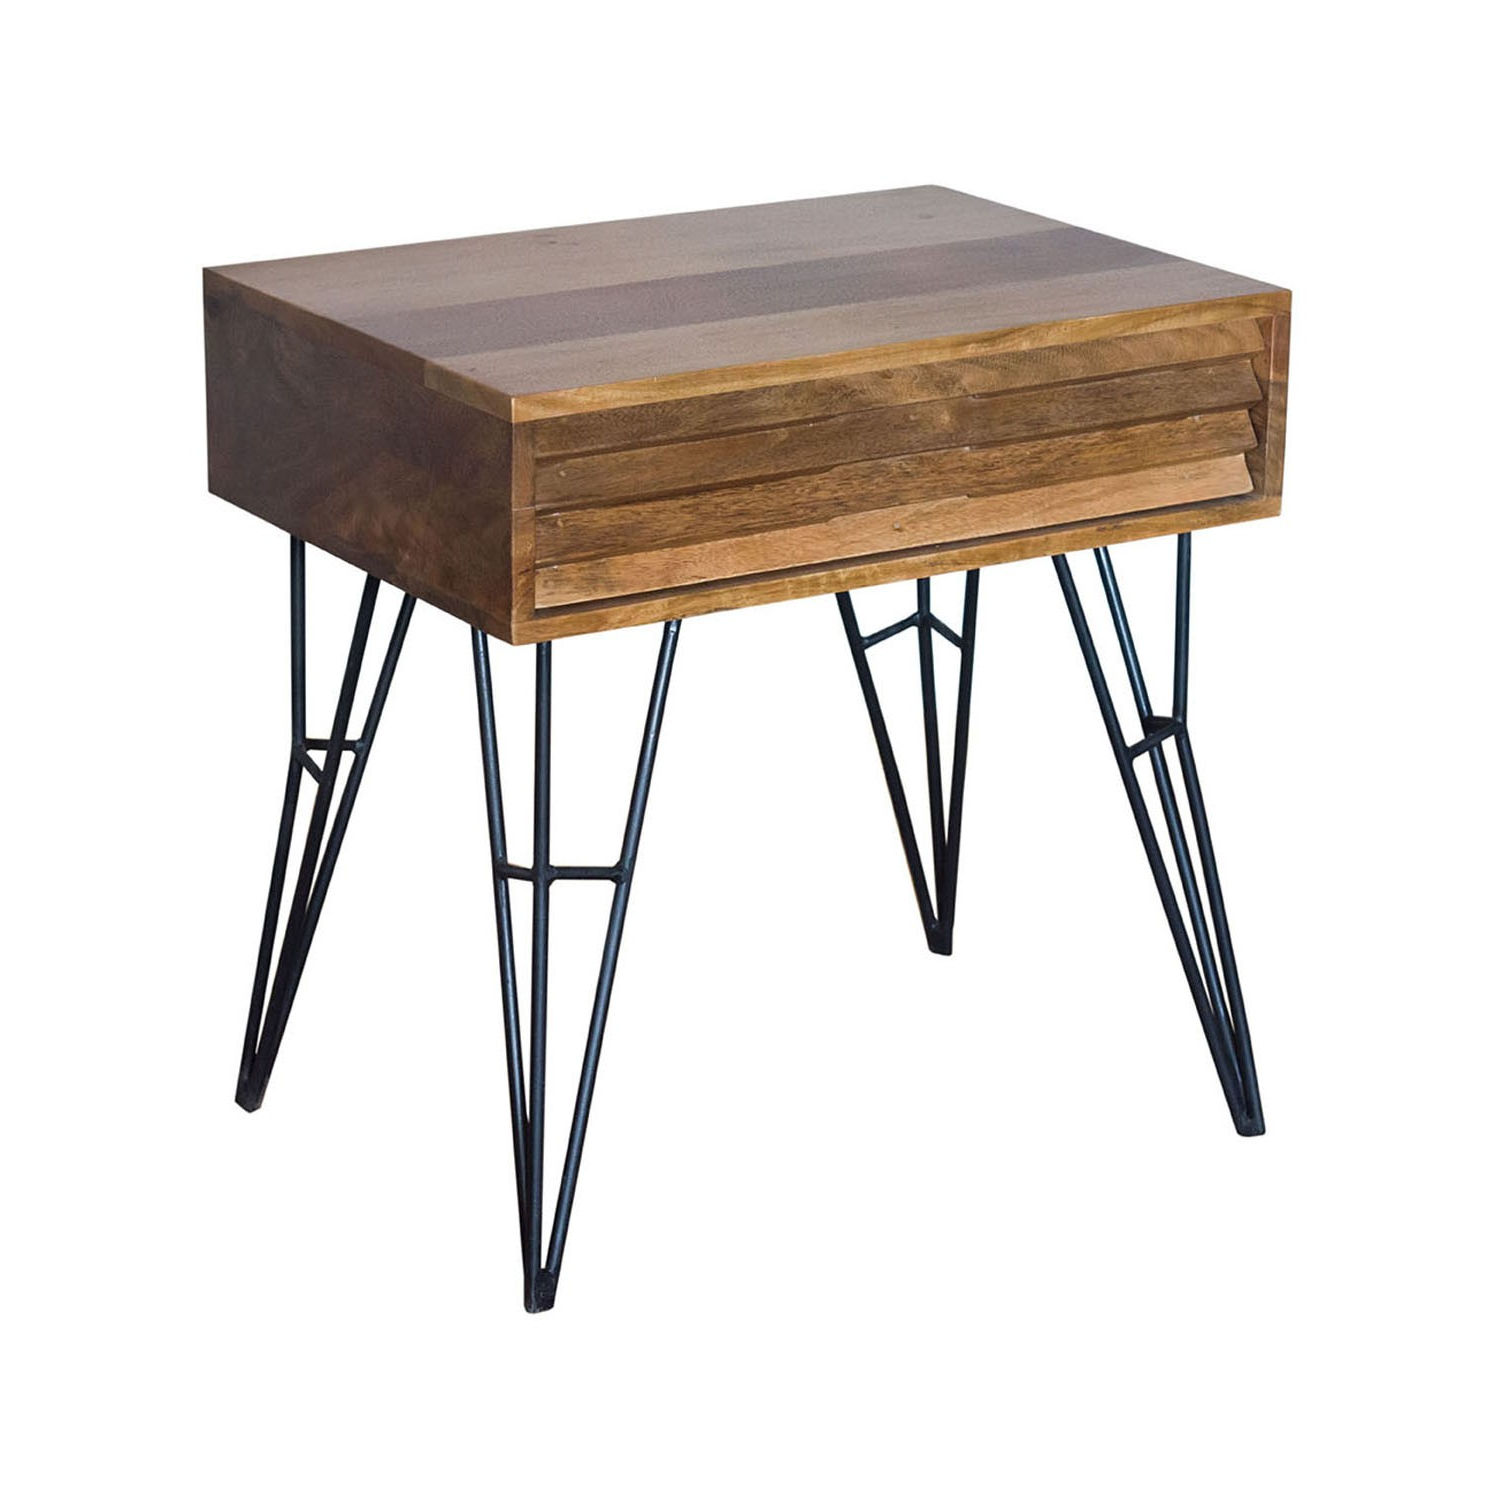 Favorite Natural 2 Drawer Shutter Coffee Tables Intended For Shutter 1 Drawer Nightstand/iron & Mango Wood/natural Finish/23* (View 6 of 20)